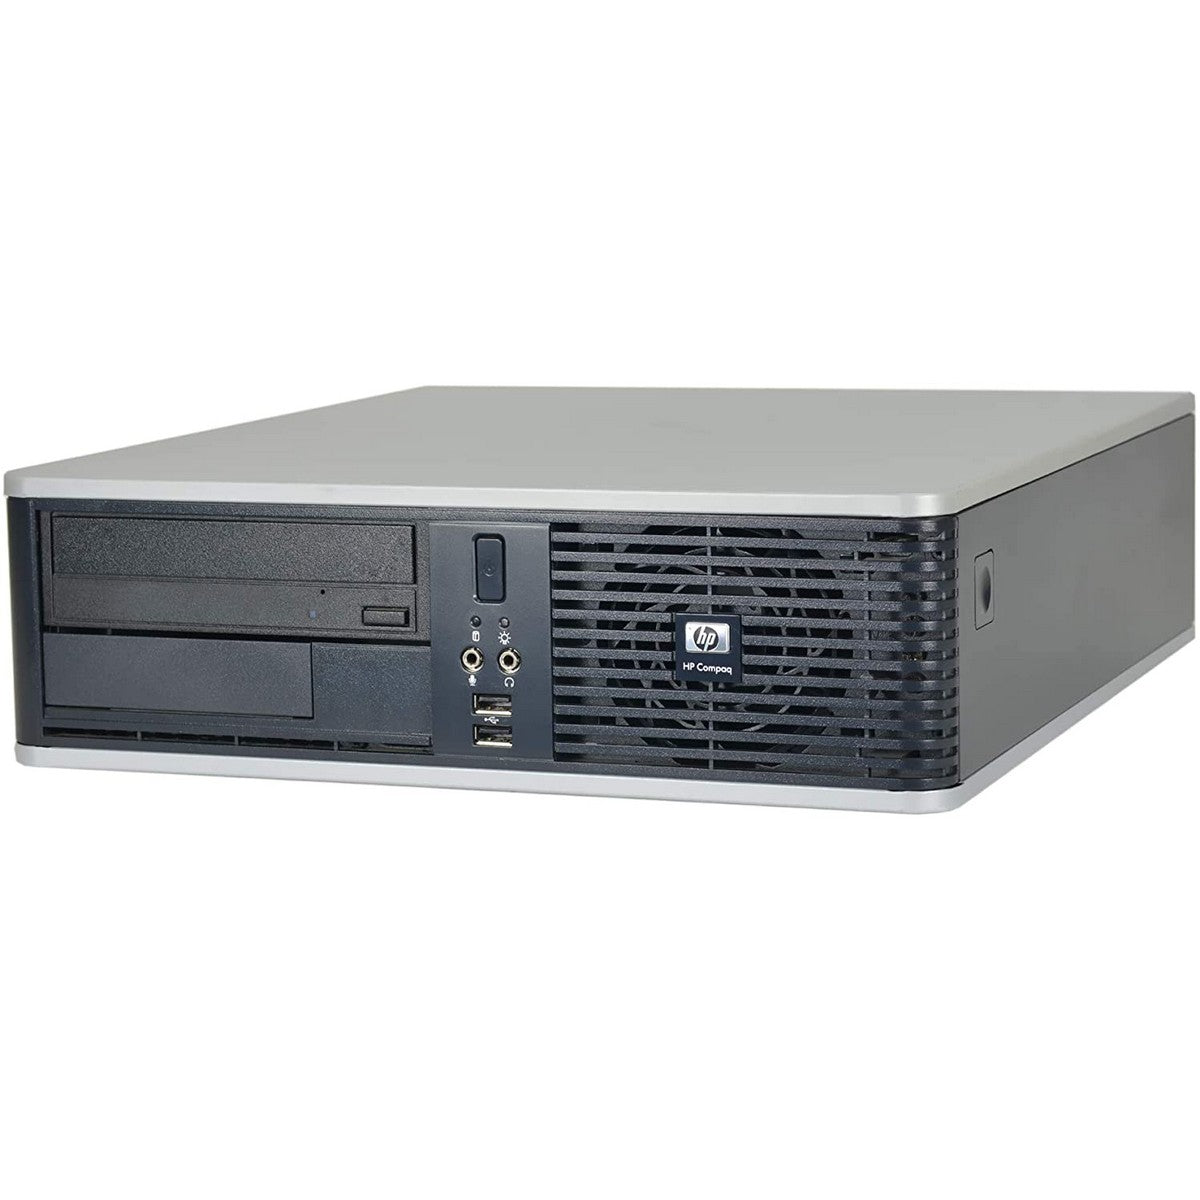 Used HP Compaq 5800 Desktop, Intel Core i3 i3-2120, 4GB RAM, 500GB HDD